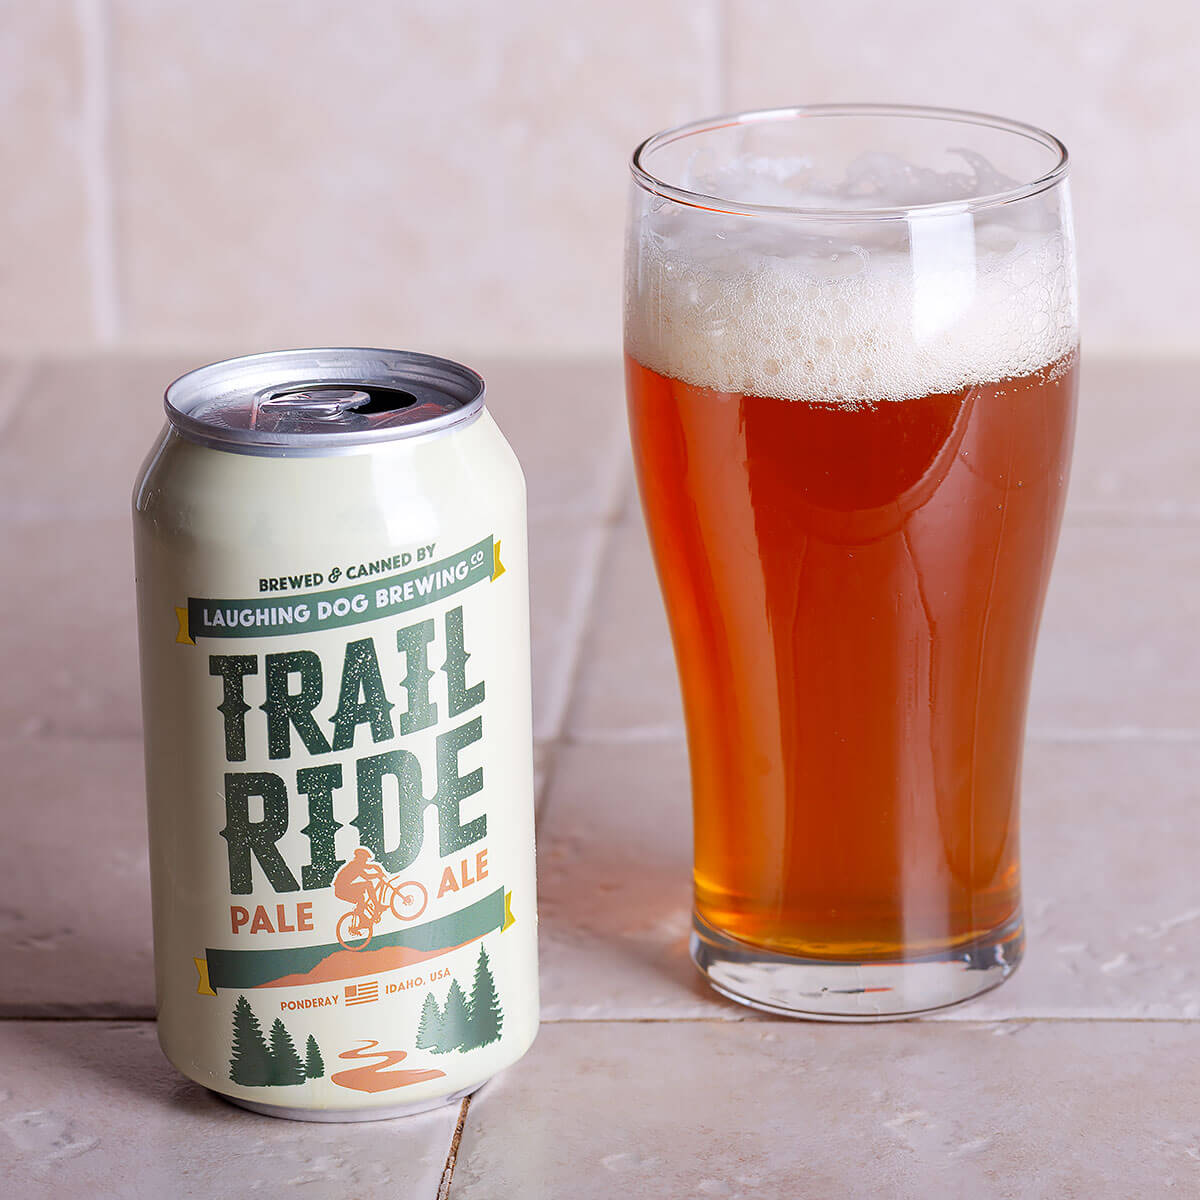 Trail Ride is an American Pale Ale by Laughing Dog Brewing that's dominated by floral, herbal, and citrus hops and balanced by toast and caramel.